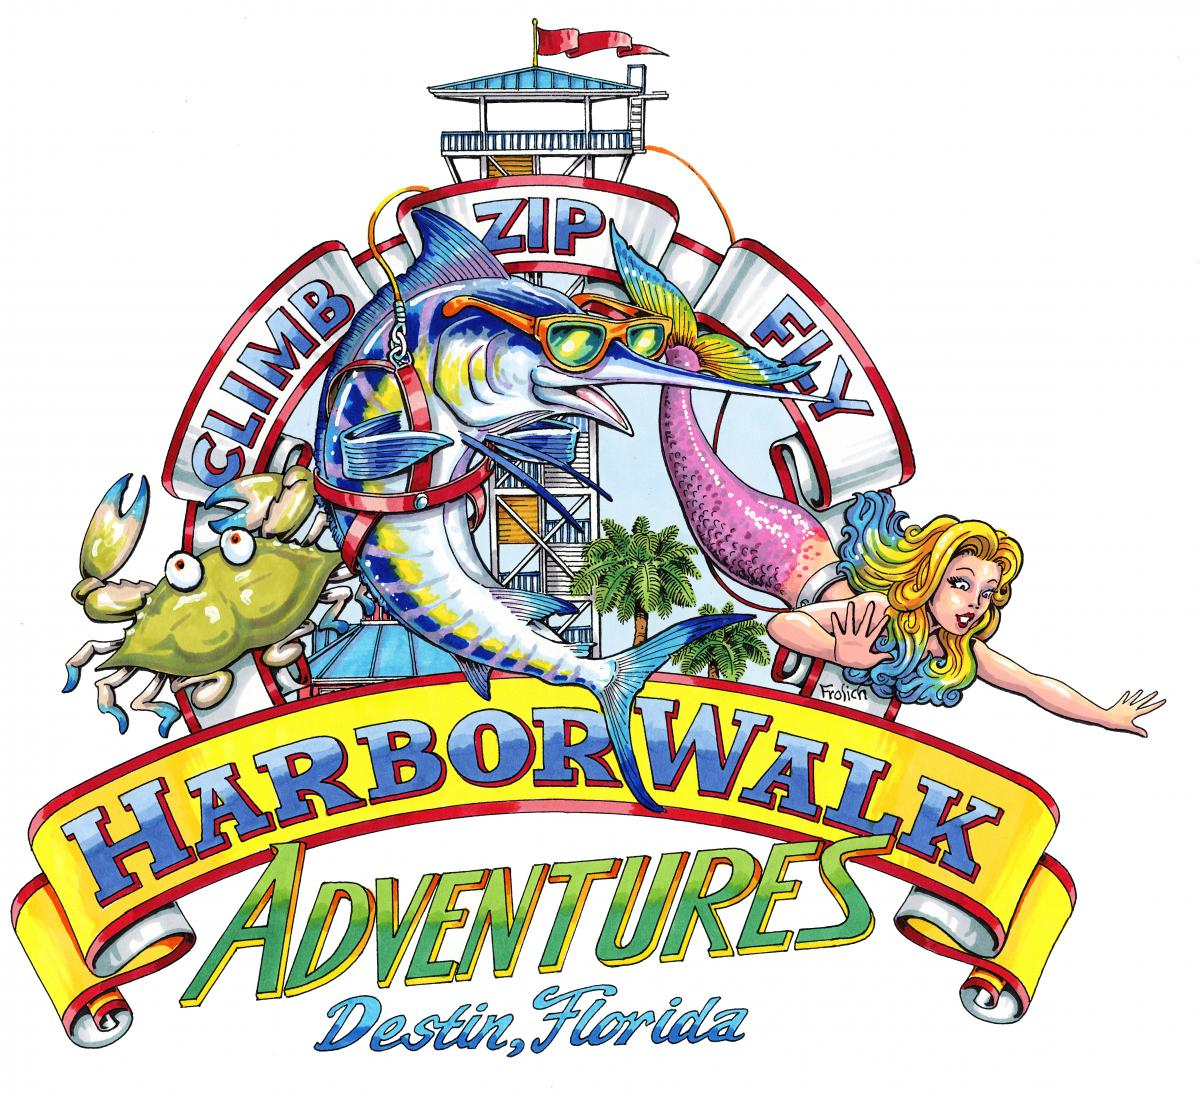 Picture of Harborwalk adentures logo with  a crab, fish and mermaid